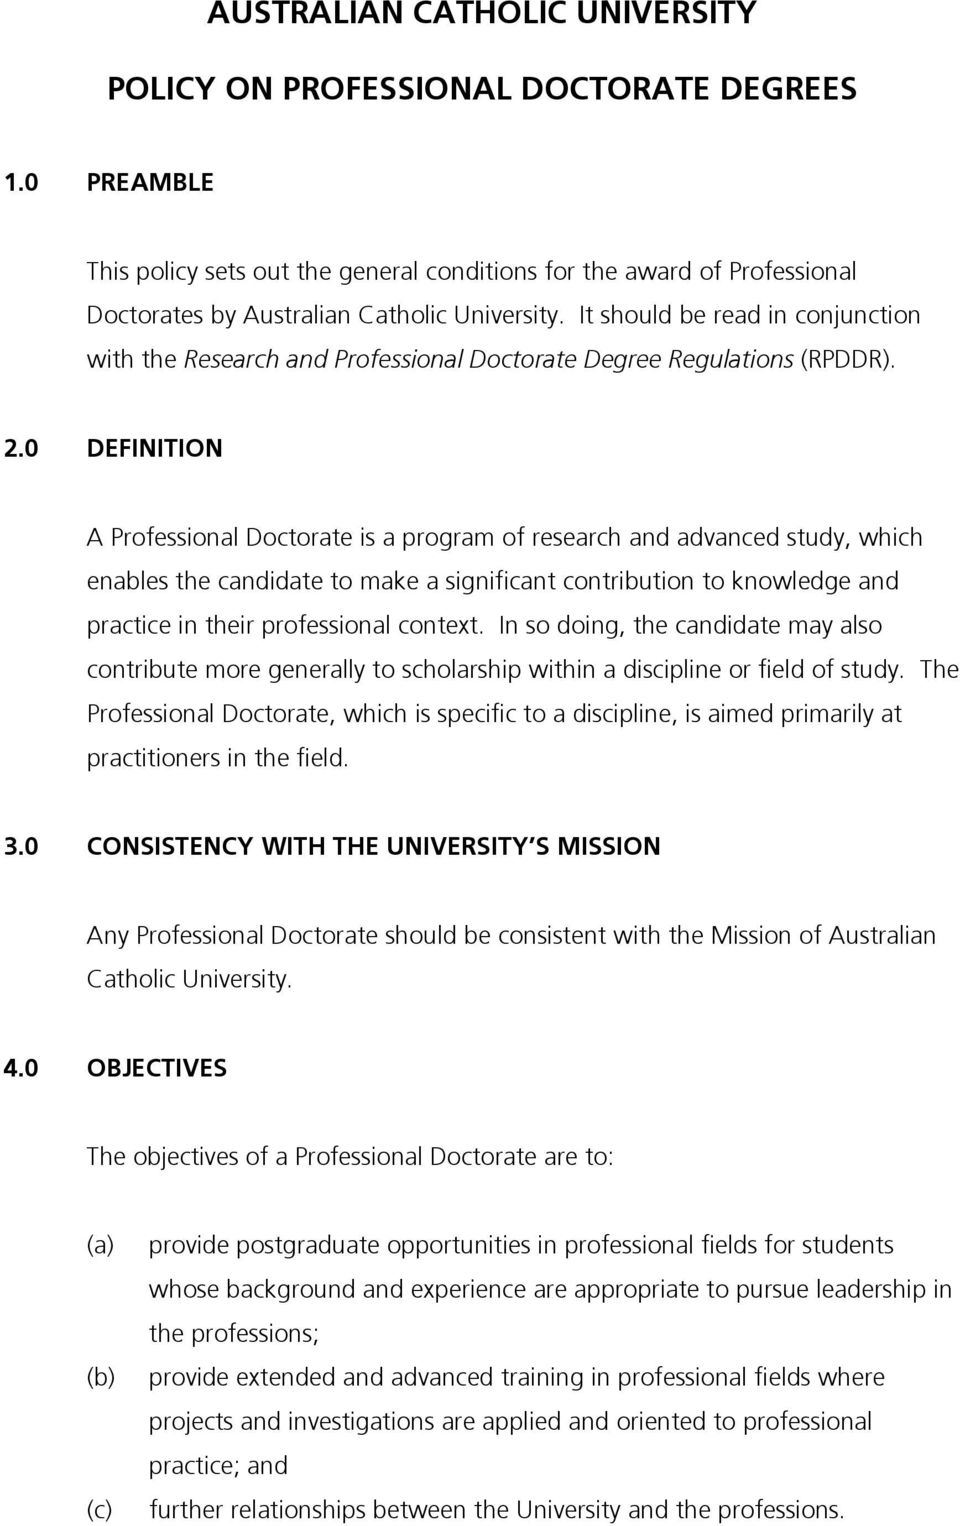 AUSTRALIAN CATHOLIC UNIVERSITY POLICY ON PROFESSIONAL